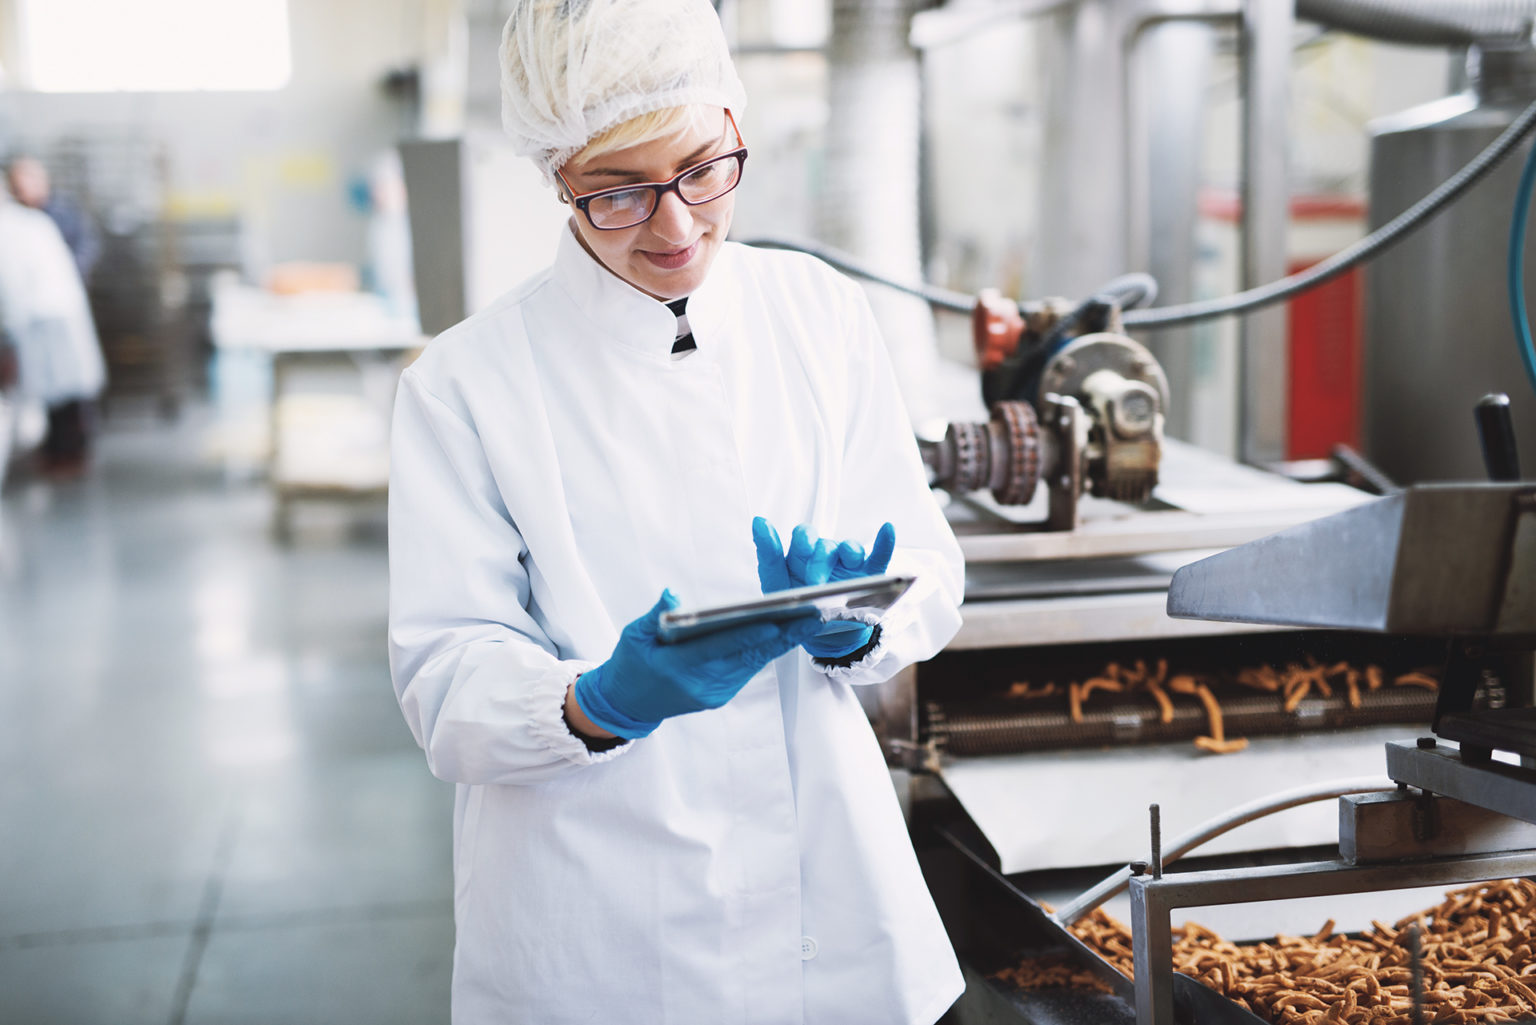 Young female worker in sterile clothes is checking quality of products in food factory.